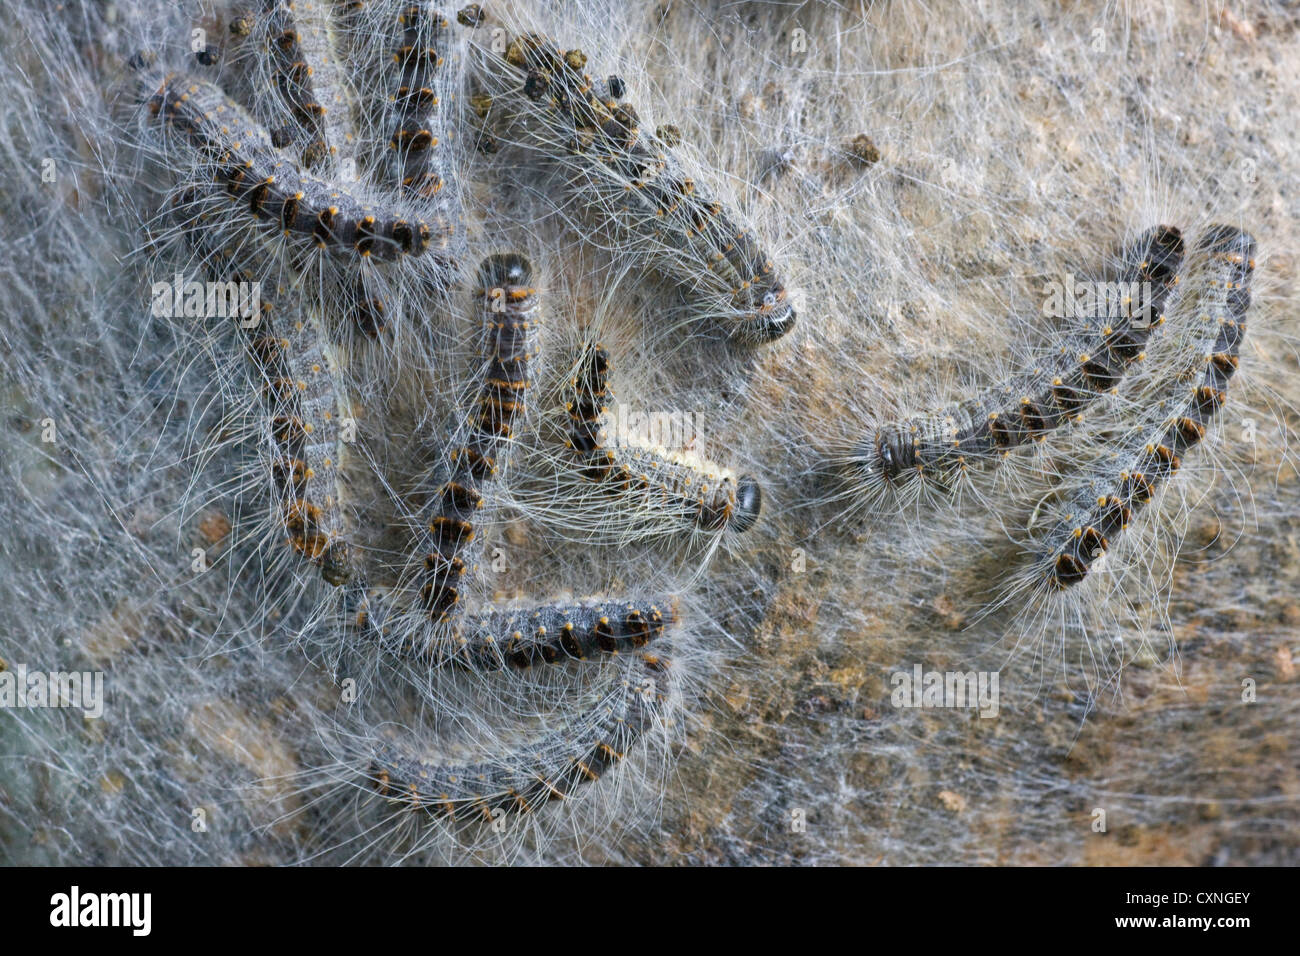 Nest of Oak Processionary caterpillars (Thaumetopoea processionea) on tree trunk - Stock Image